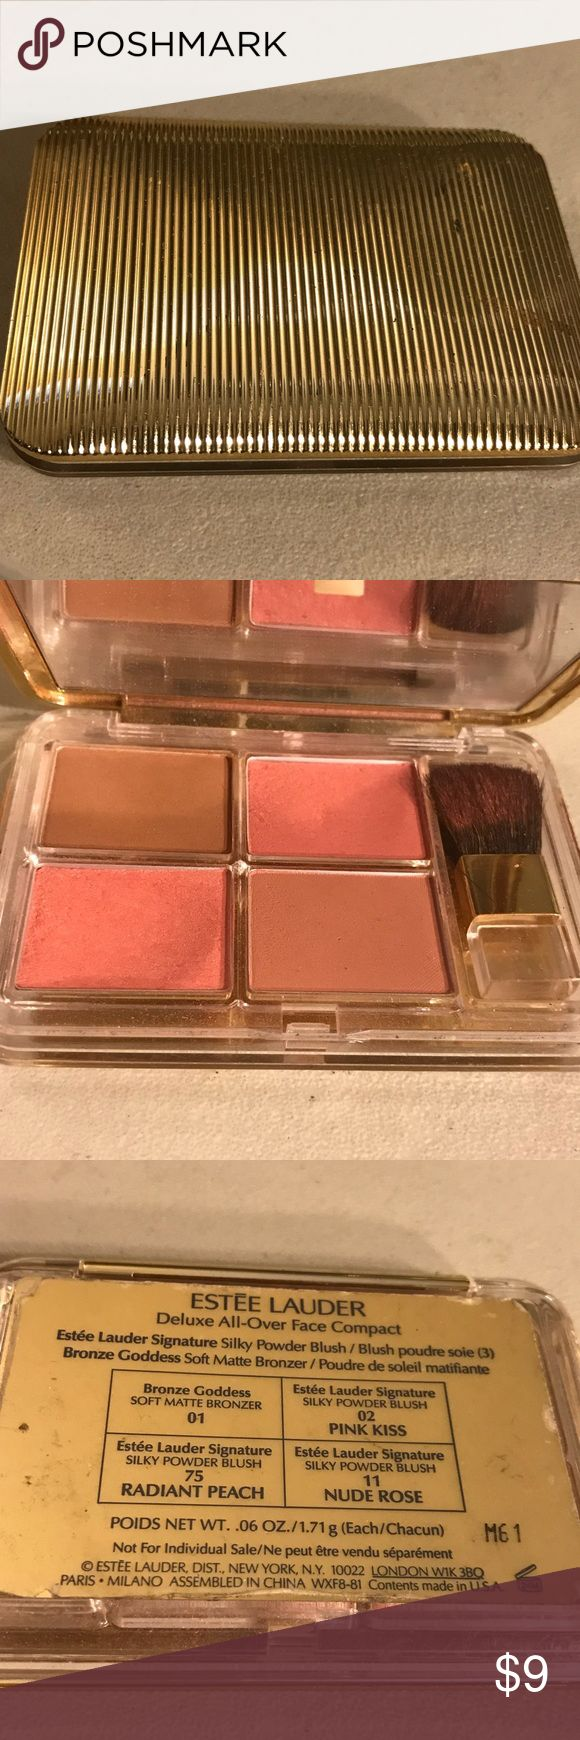 Estée Lauder deluxe all over face compact Estée Lauder deluxe all over face compact in various colors. Used. Thanks for checking out Luxury1cosmetics!! Offers are welcomed, bundles are discounted!!! Estee Lauder Makeup